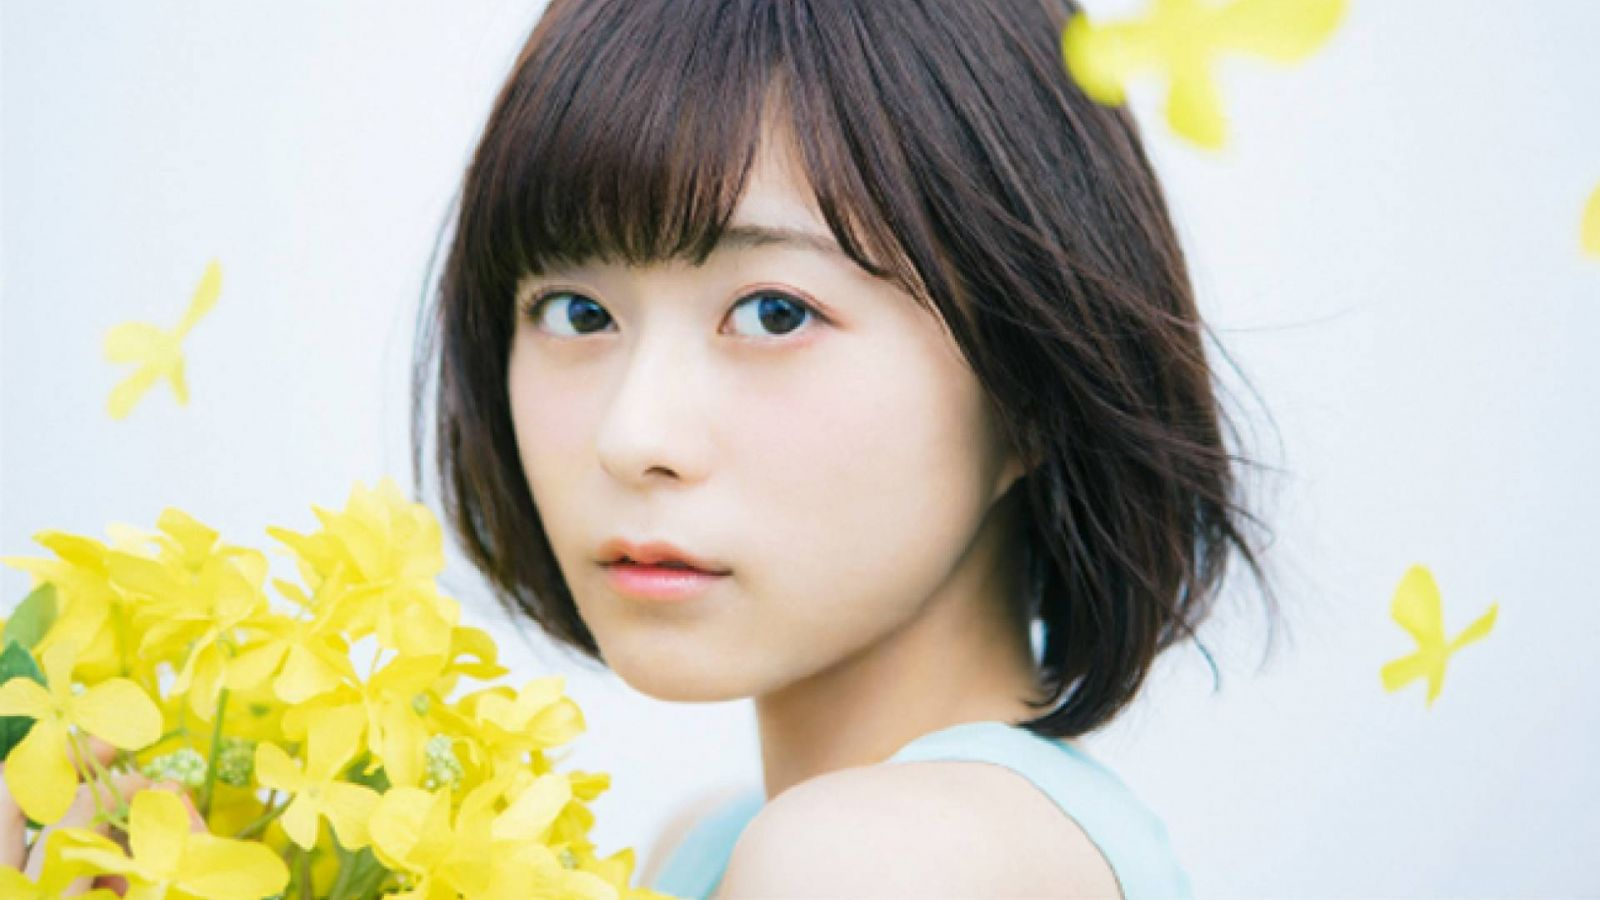 Inori Minase © Sony Music Artists Inc. All rights reserved.